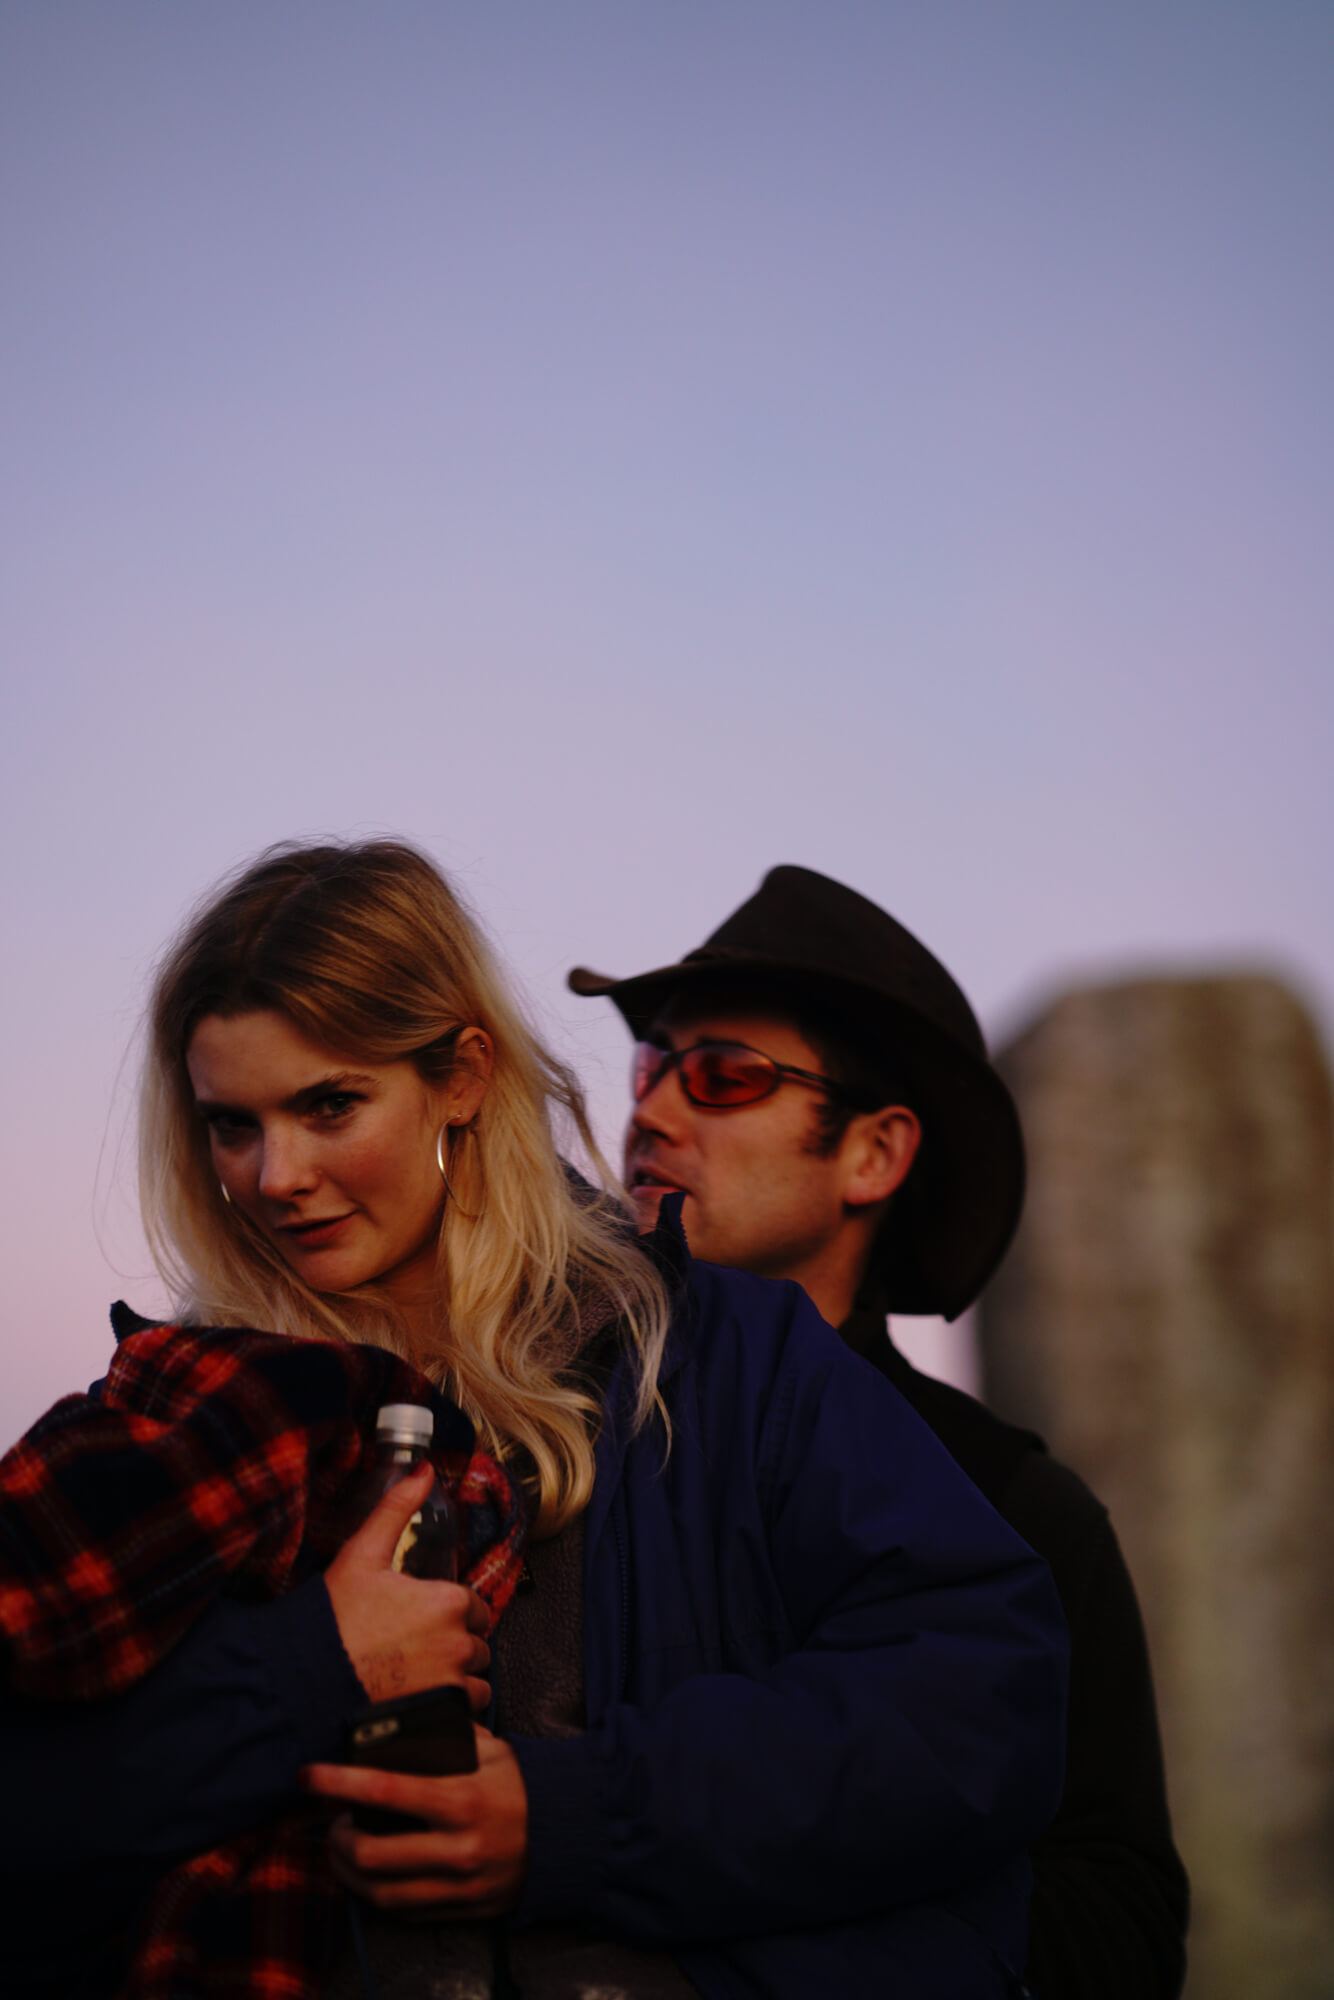 ana paganini stonehenge Summer and Winter Solstices the south west collective of photography couple pose for portrait at sunset